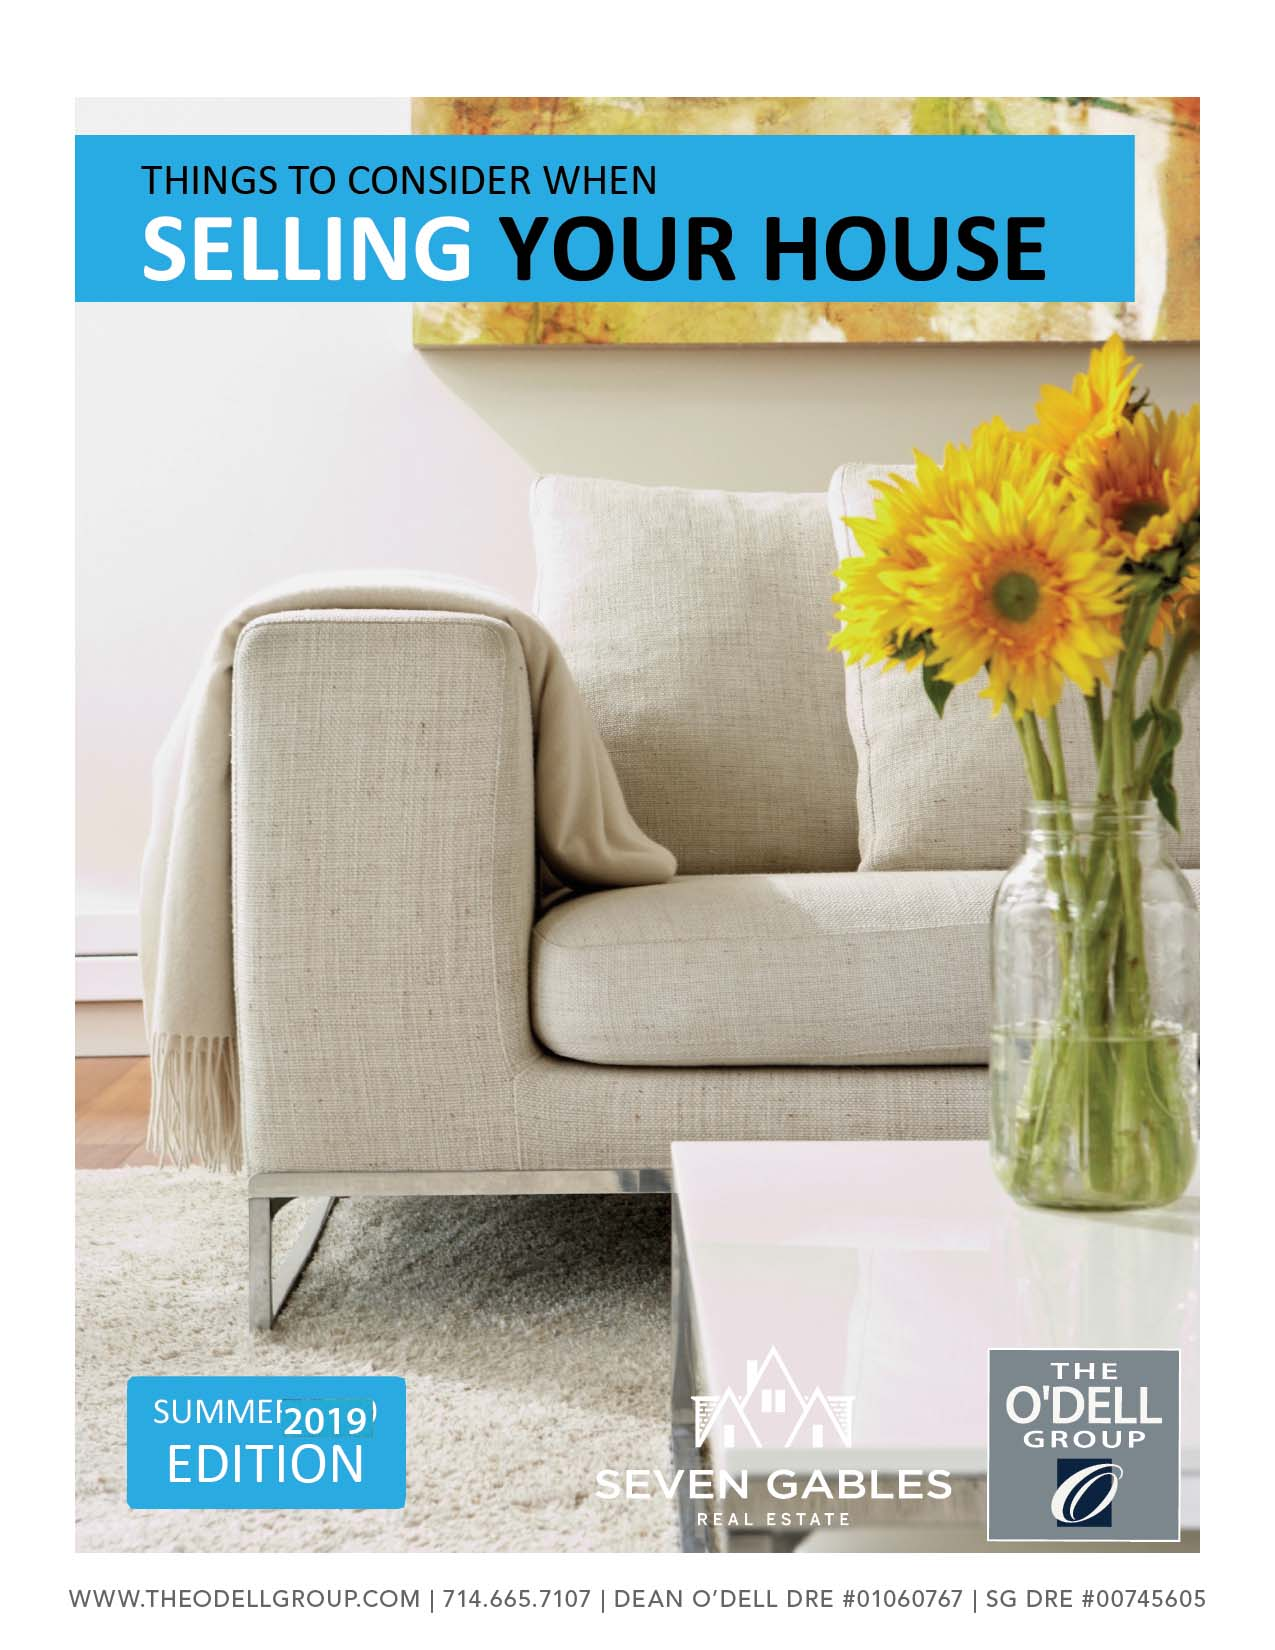 DOWNLOAD YOUR SUMMER 2020 HOME SELLING GUIDE